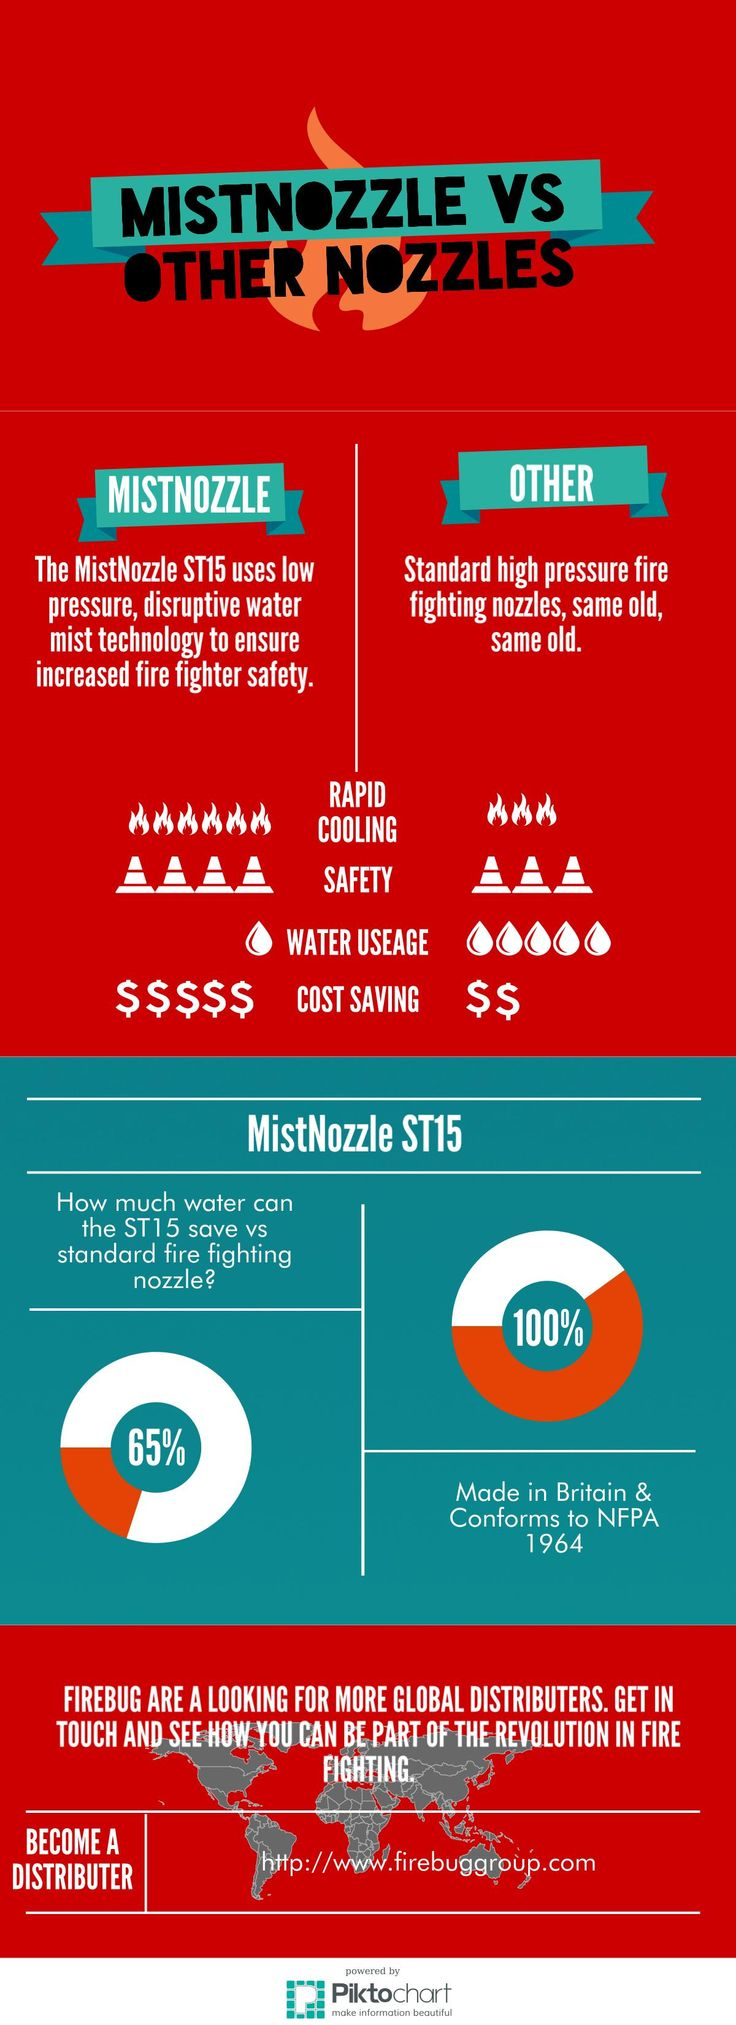 An info-graphic on the MistNozzle ST15. It answers questions such as what's it all about? How does your fire fighting equipment benefit me? What's the difference between a misting nozzle and a standard fire nozzle? How can I distribute this product?  See MistNozzle vs. other nozzles below:  #firefighters   #mistingnozzle   #firenozzle   #MistNozzle   #ST15  #FireBug